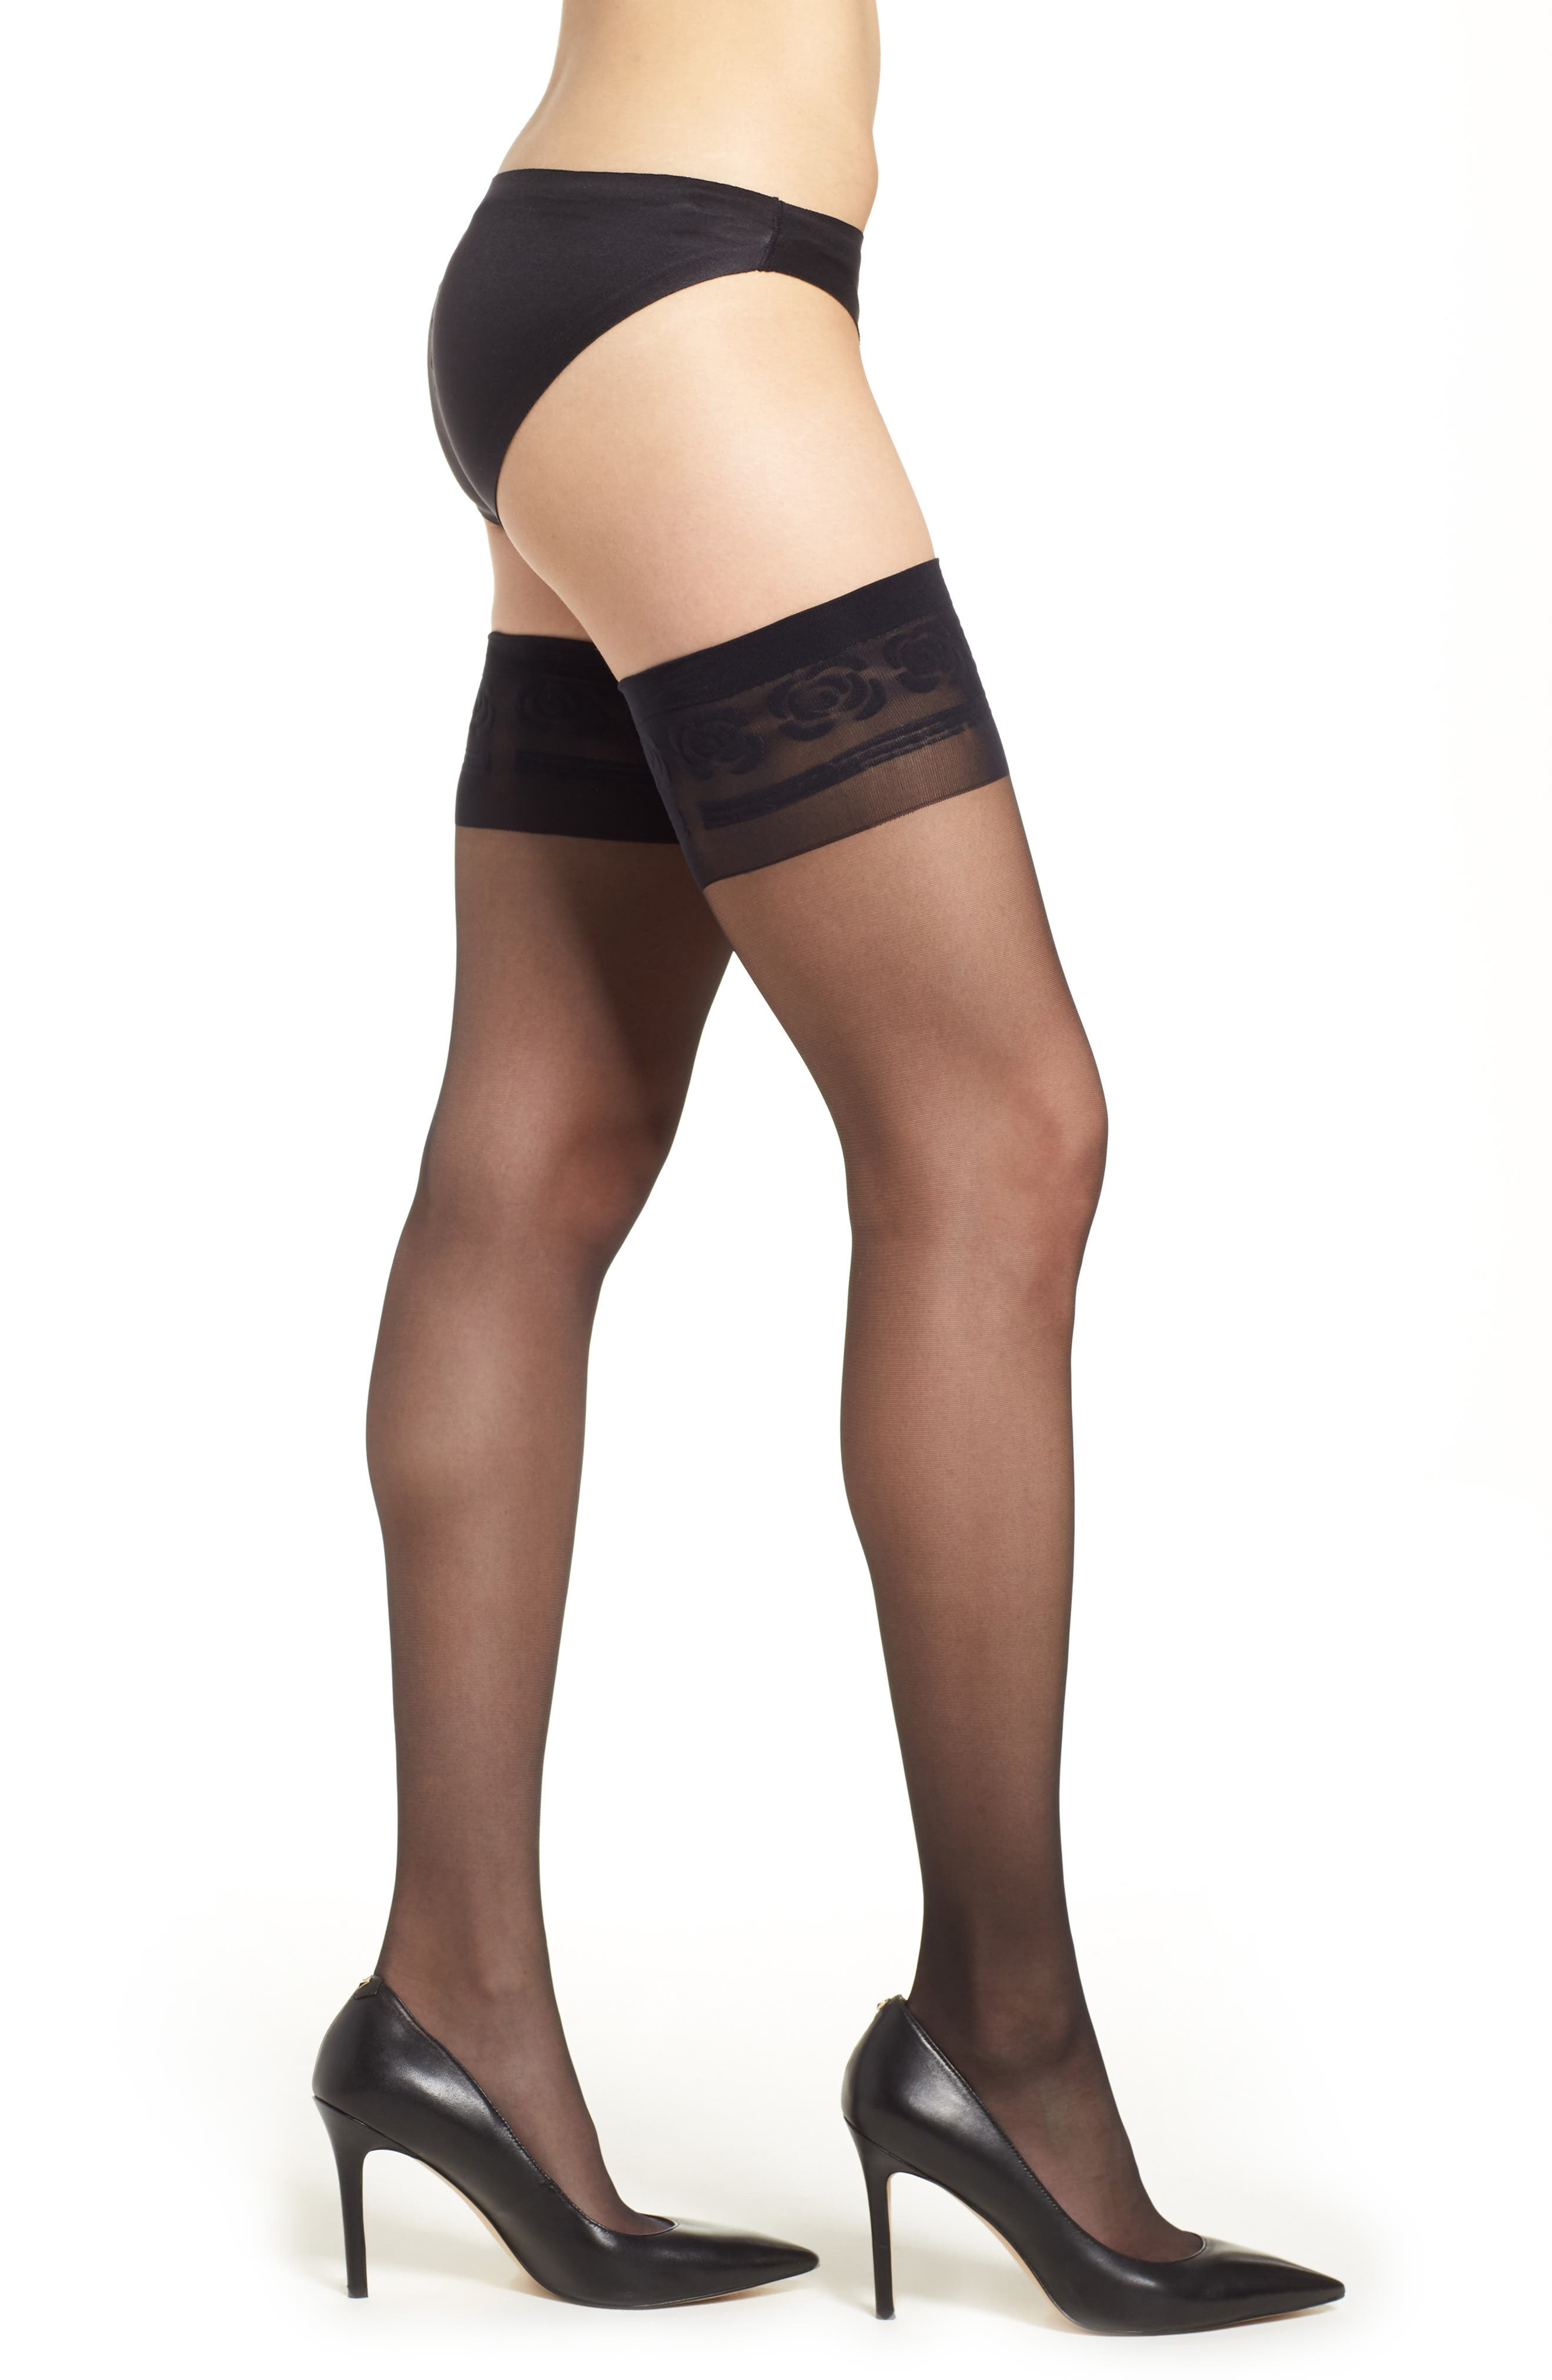 Component Sheer Stay-Up Stockings,                         Main,                         color, 001